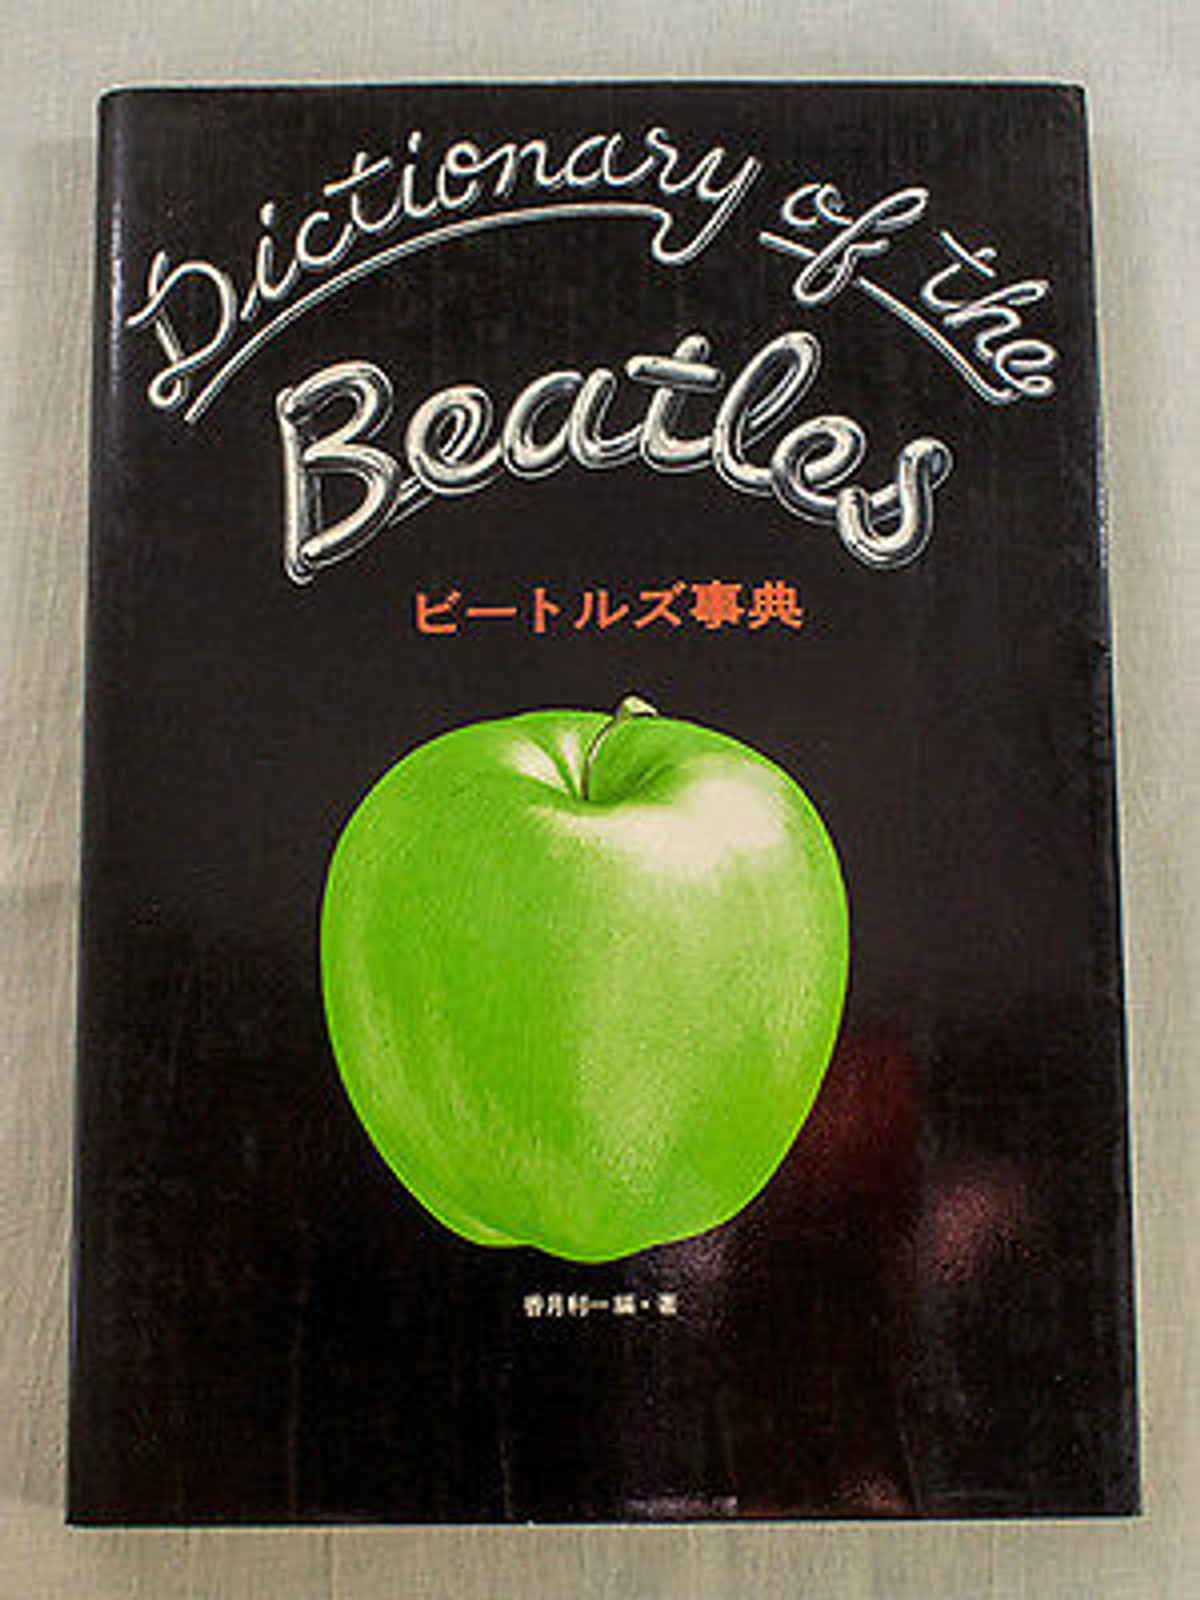 DICTIONARY OF THE BEATLES BOOK JAPAN 279P